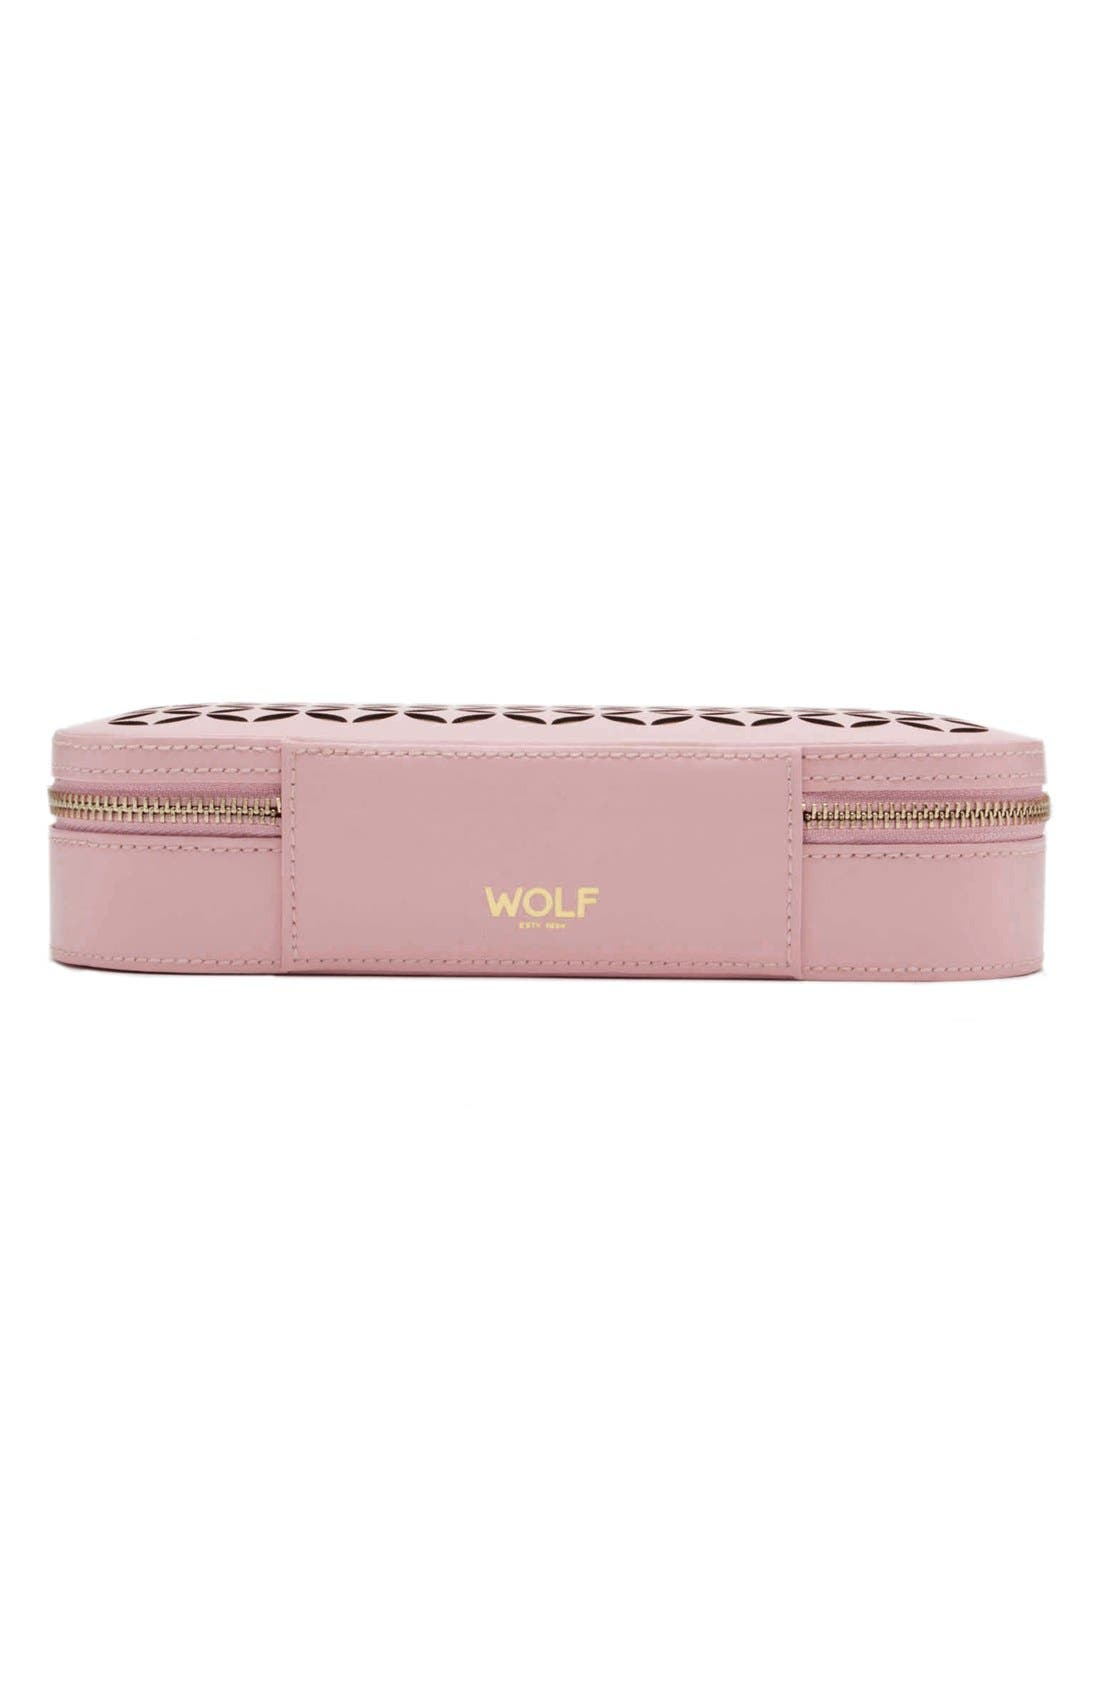 Chloe Zip Jewelry Case,                             Alternate thumbnail 4, color,                             650